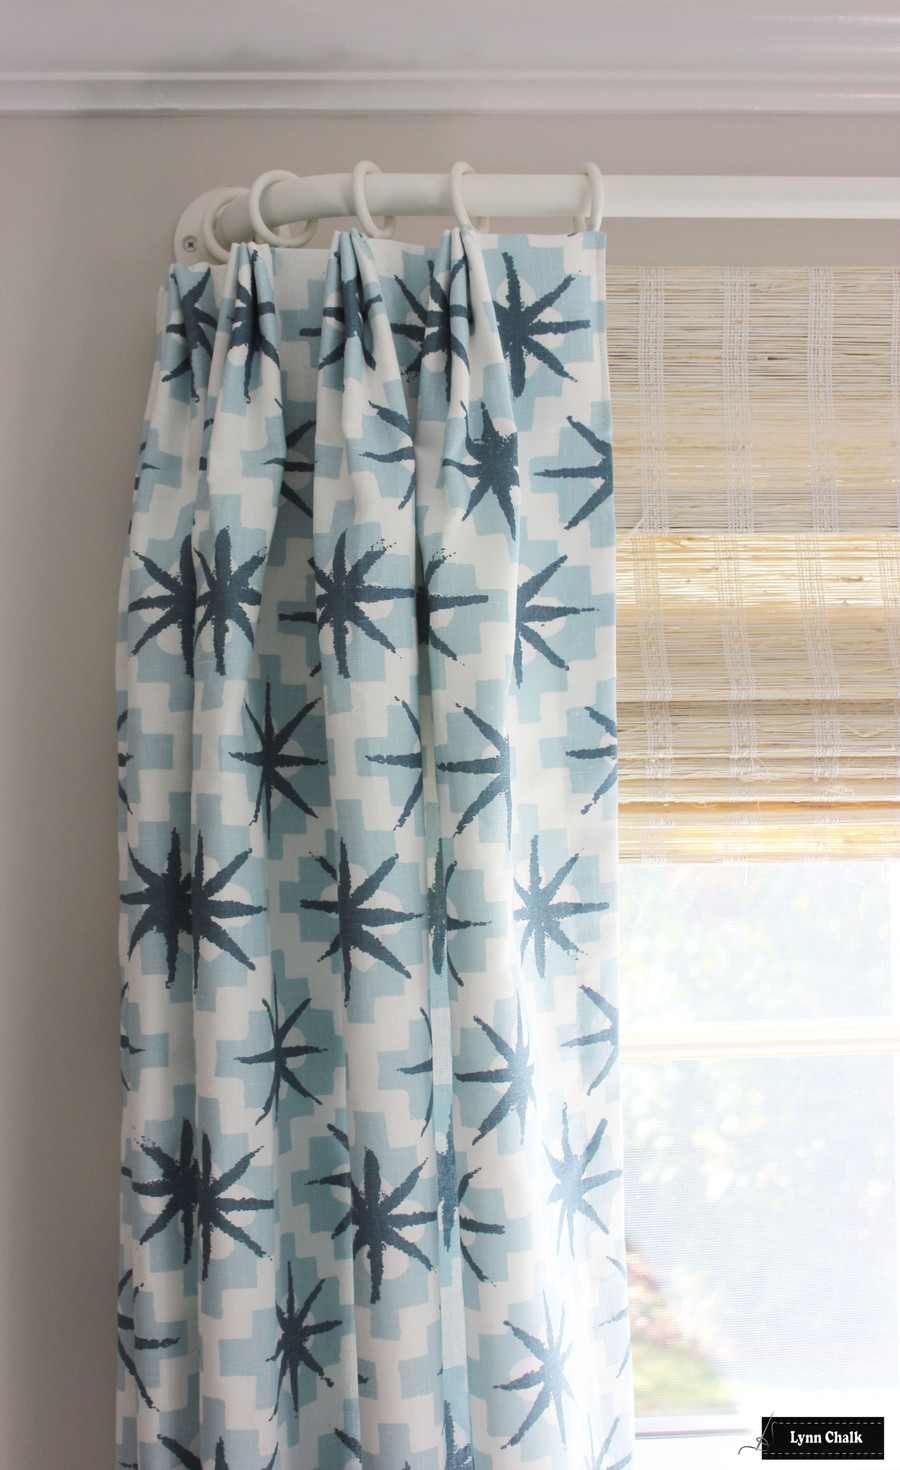 Peter Dunham Starburst North Blue Triple Euro Pleat - Helser Brothers French Poles in Alabaster - Horizon Woven Wood Shade Blakely Pale Almond